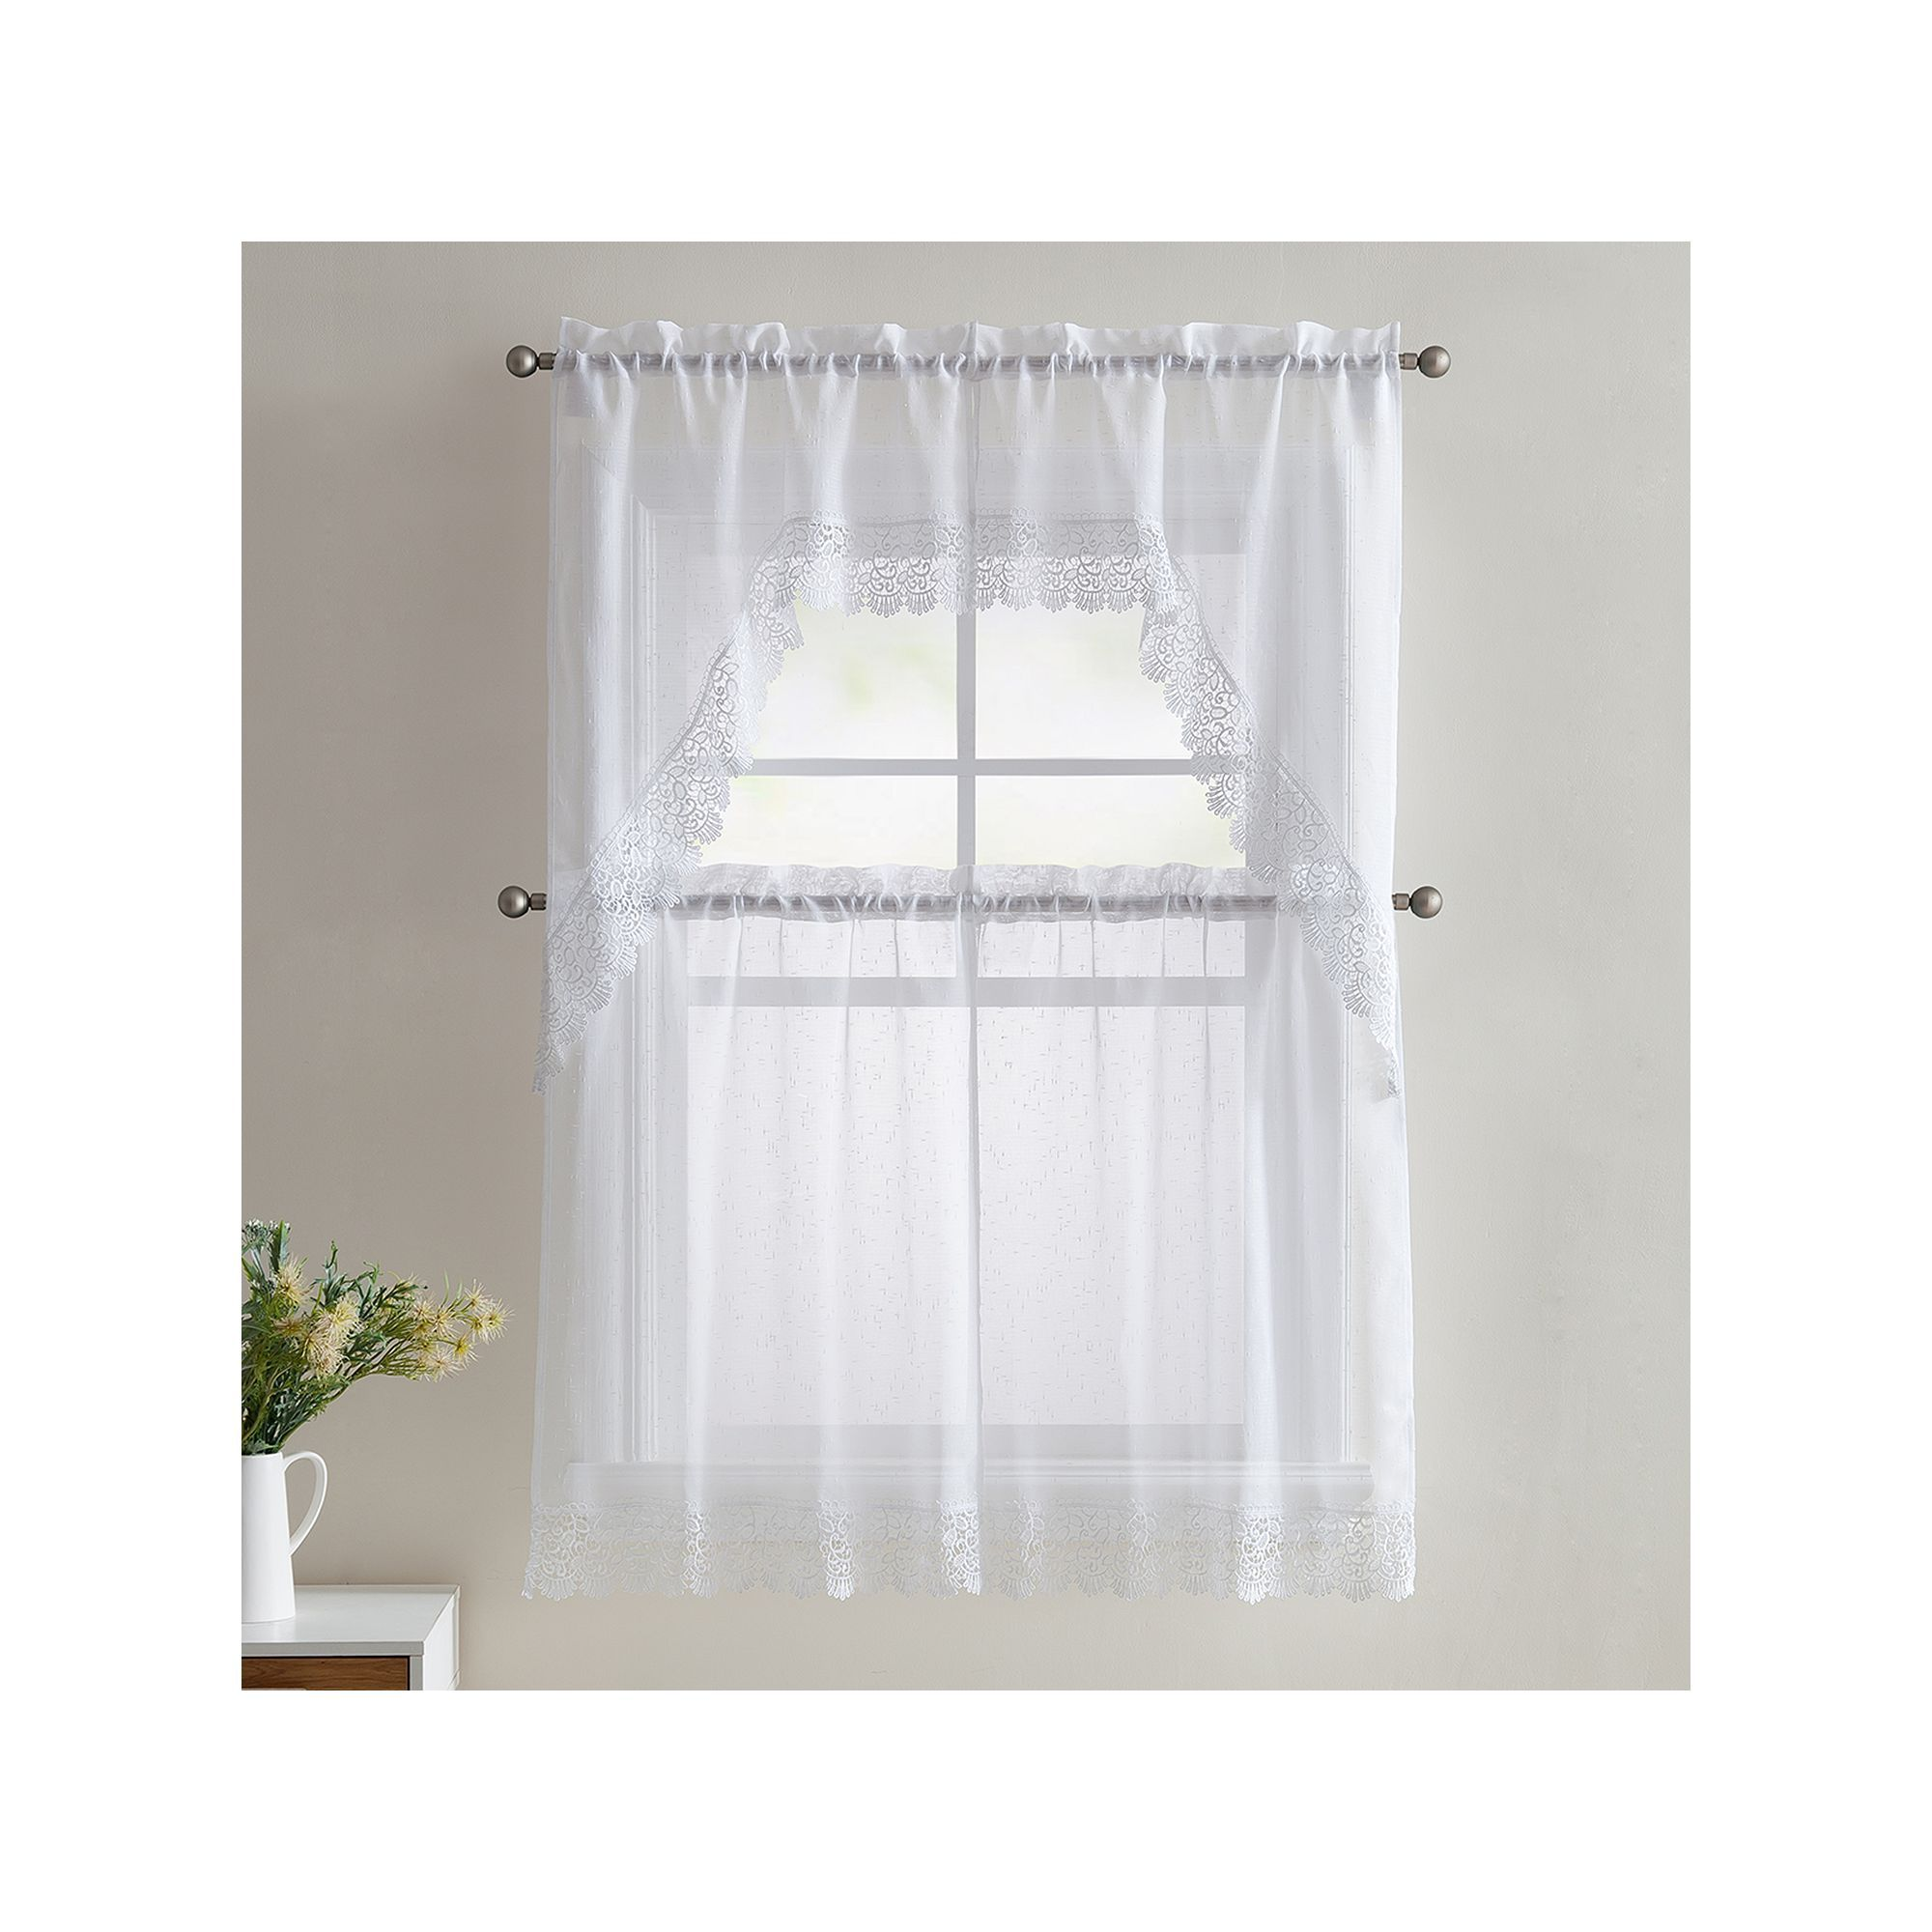 Vcny vcny piece galiana lace kitchen curtain tier u valance set